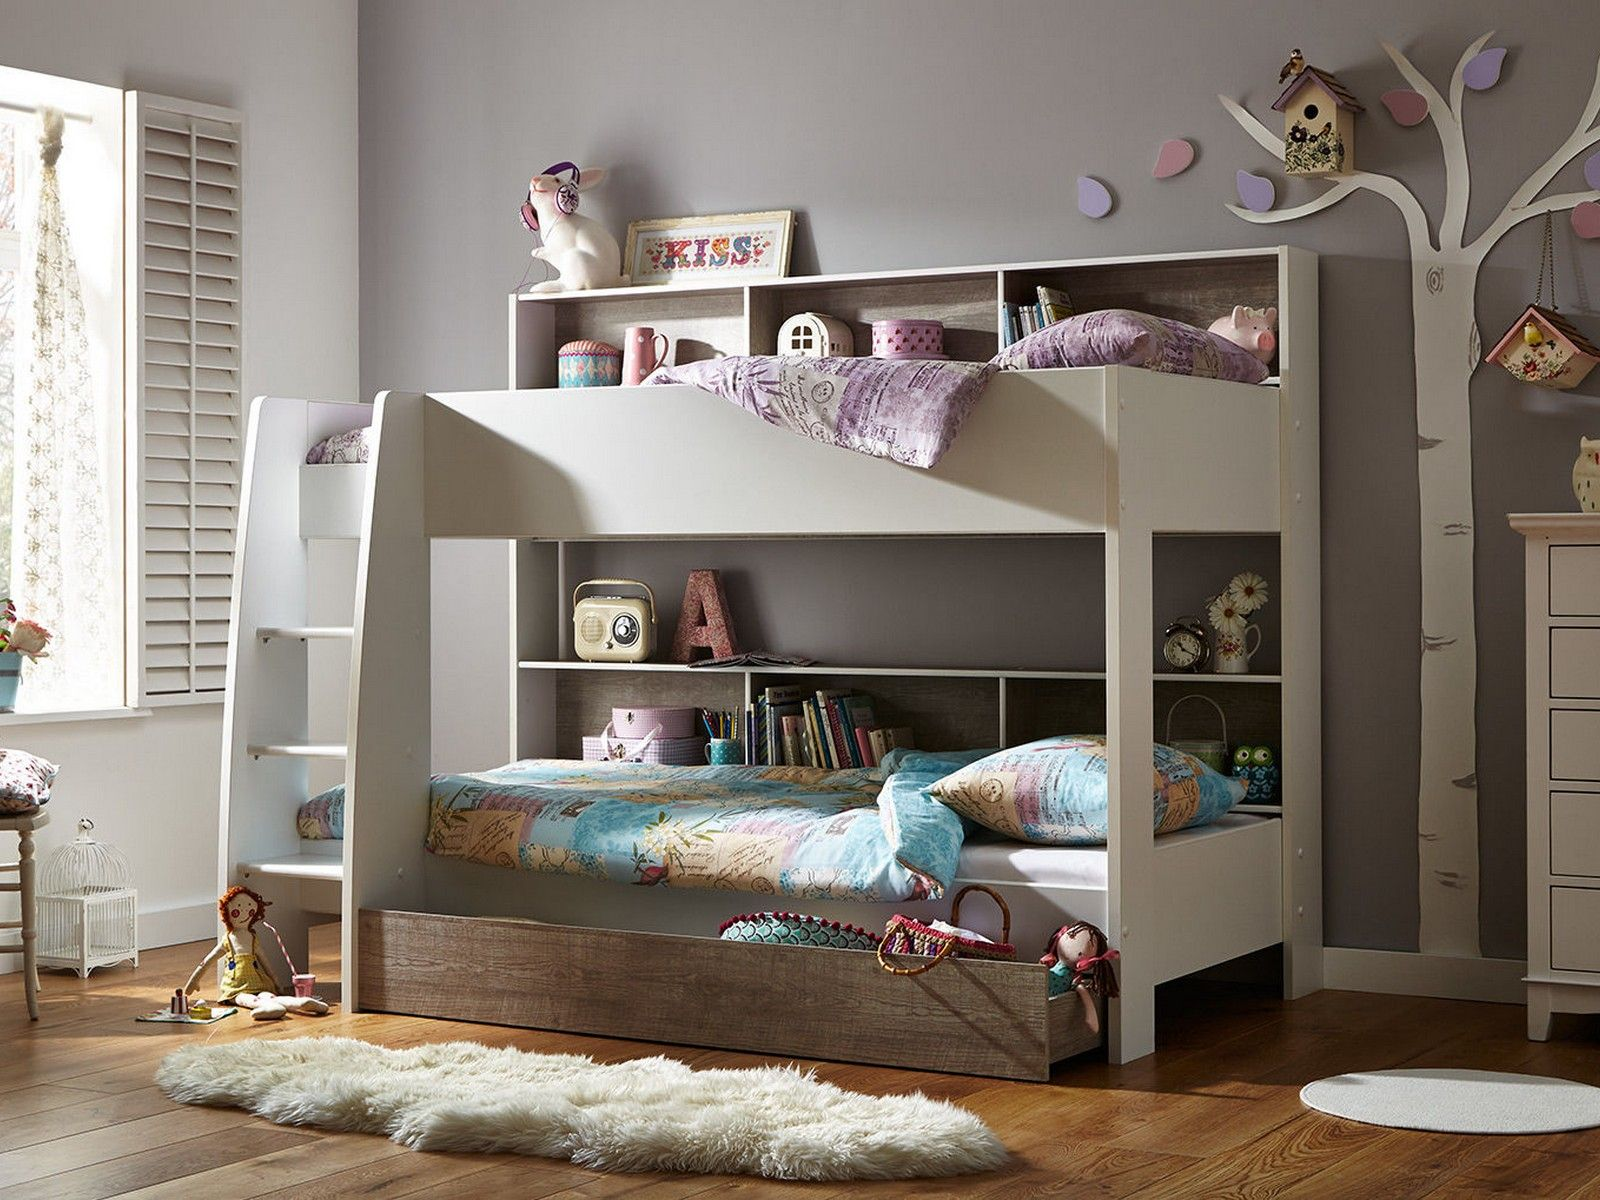 kids beds with storage. Neat White Kids Bunk Beds With Stairs And Storage Full Of Colorful Accessories S